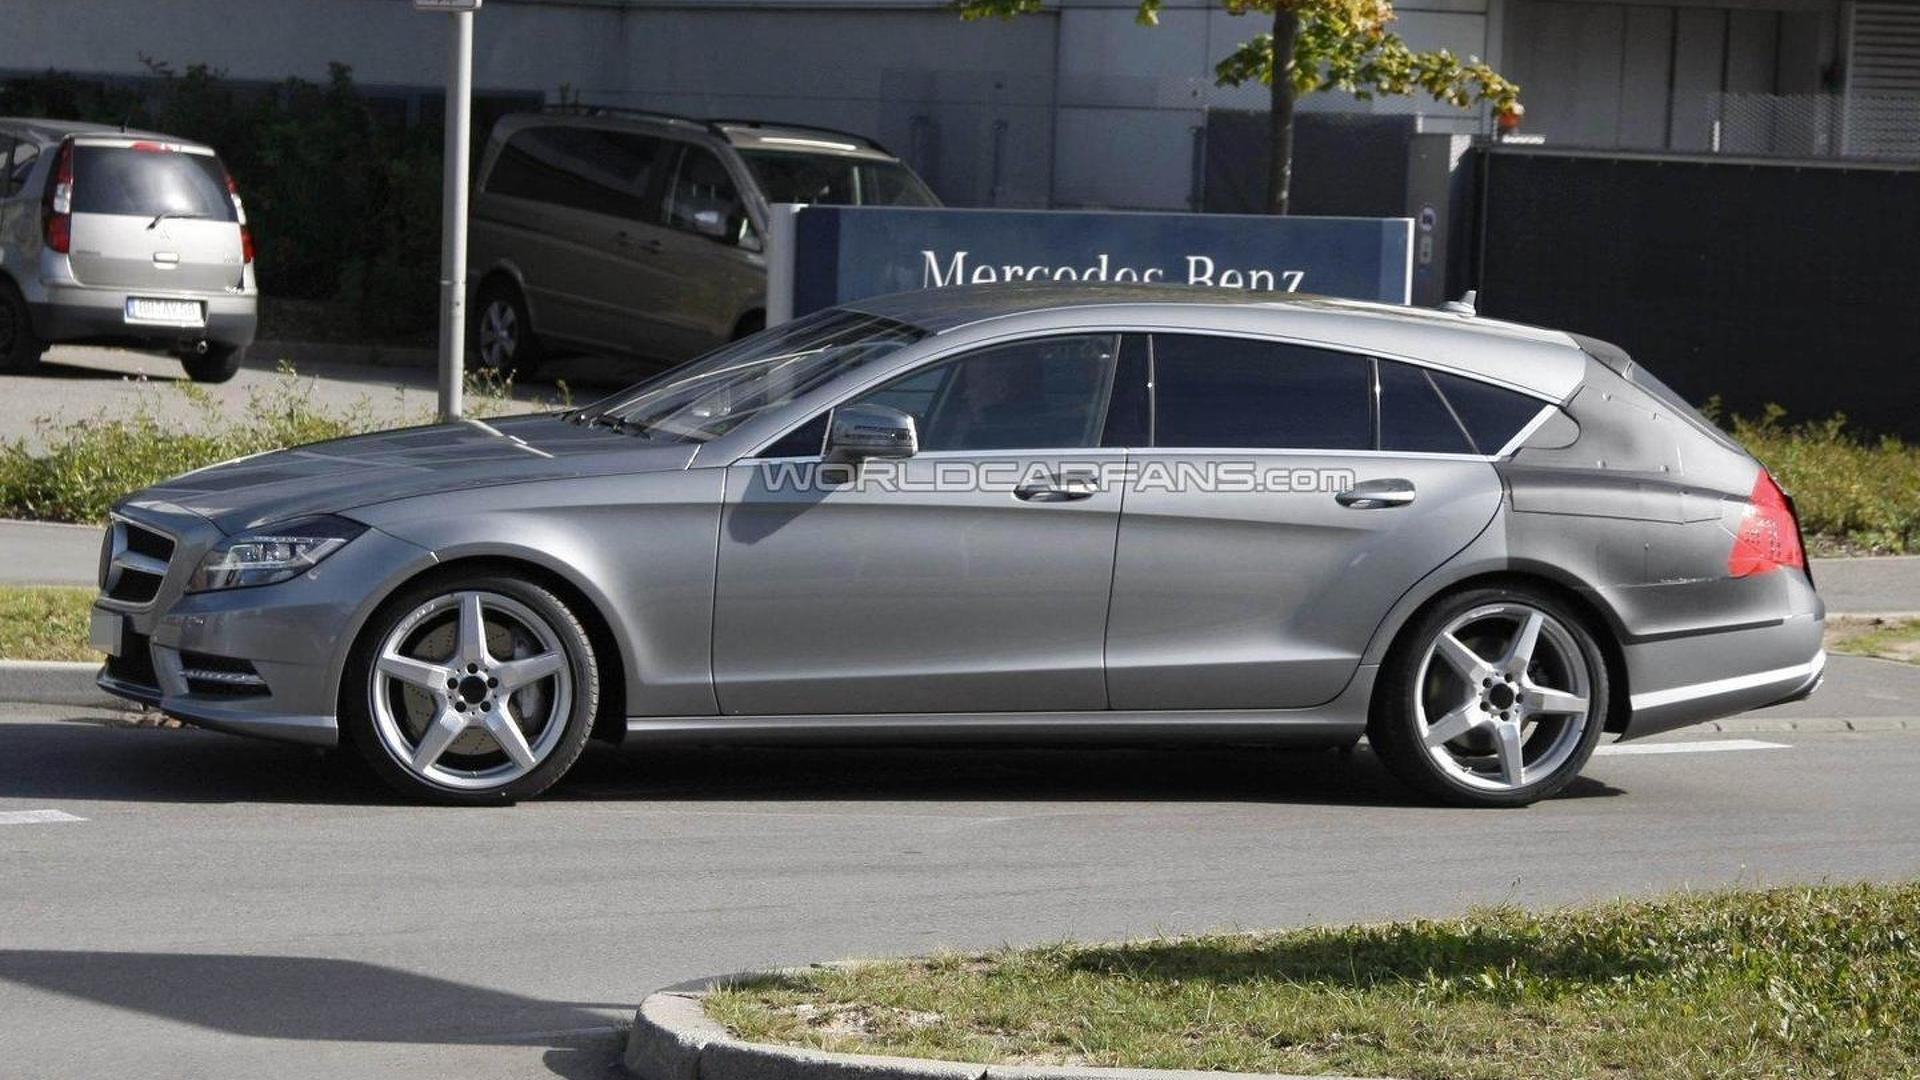 2013 Mercedes-Benz CLS wagon / shooting brake spied on [video]